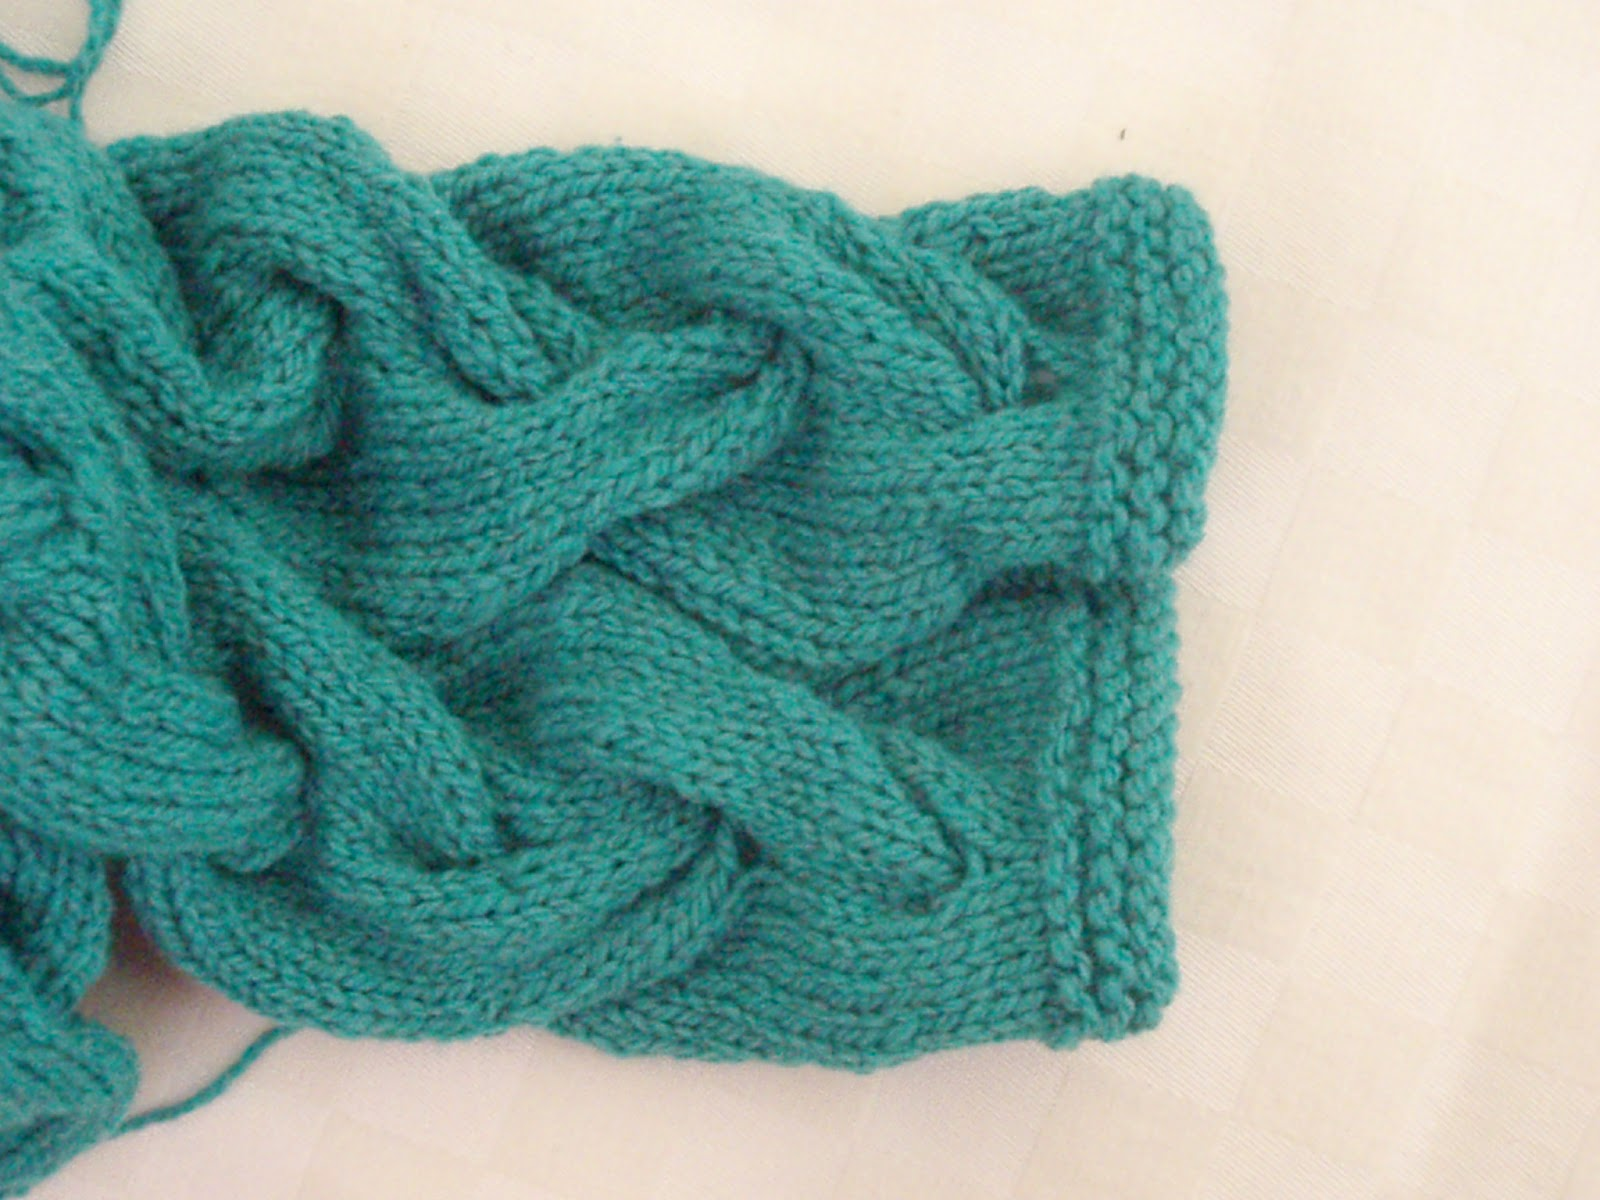 Knitting Work in Progress: Tip How to Prevent Cable Flare